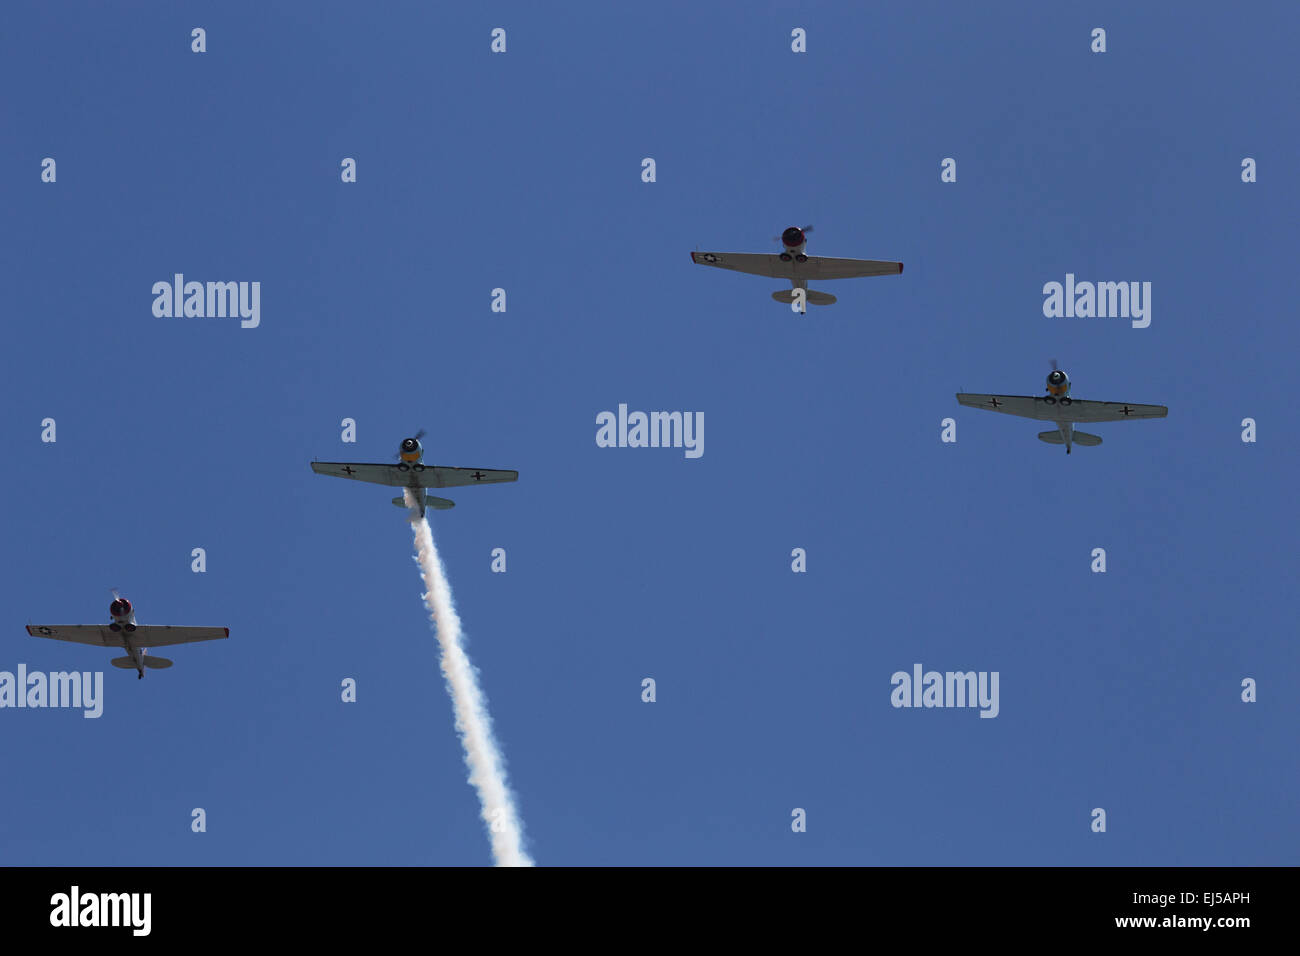 Condor Squadron flyover, Los Angeles National Cemetery Annual Memorial Event, May 26, 2014, California, USA - Stock Image